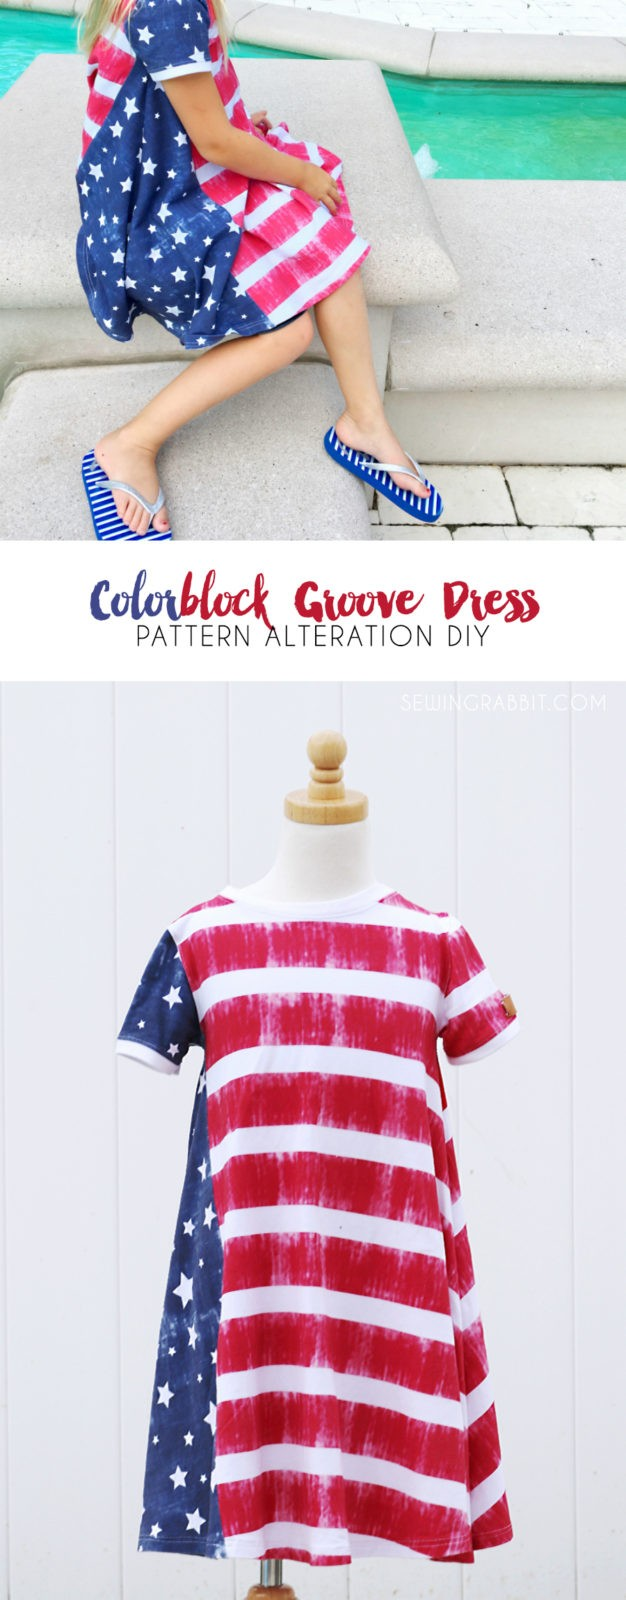 How to color block the groove dress